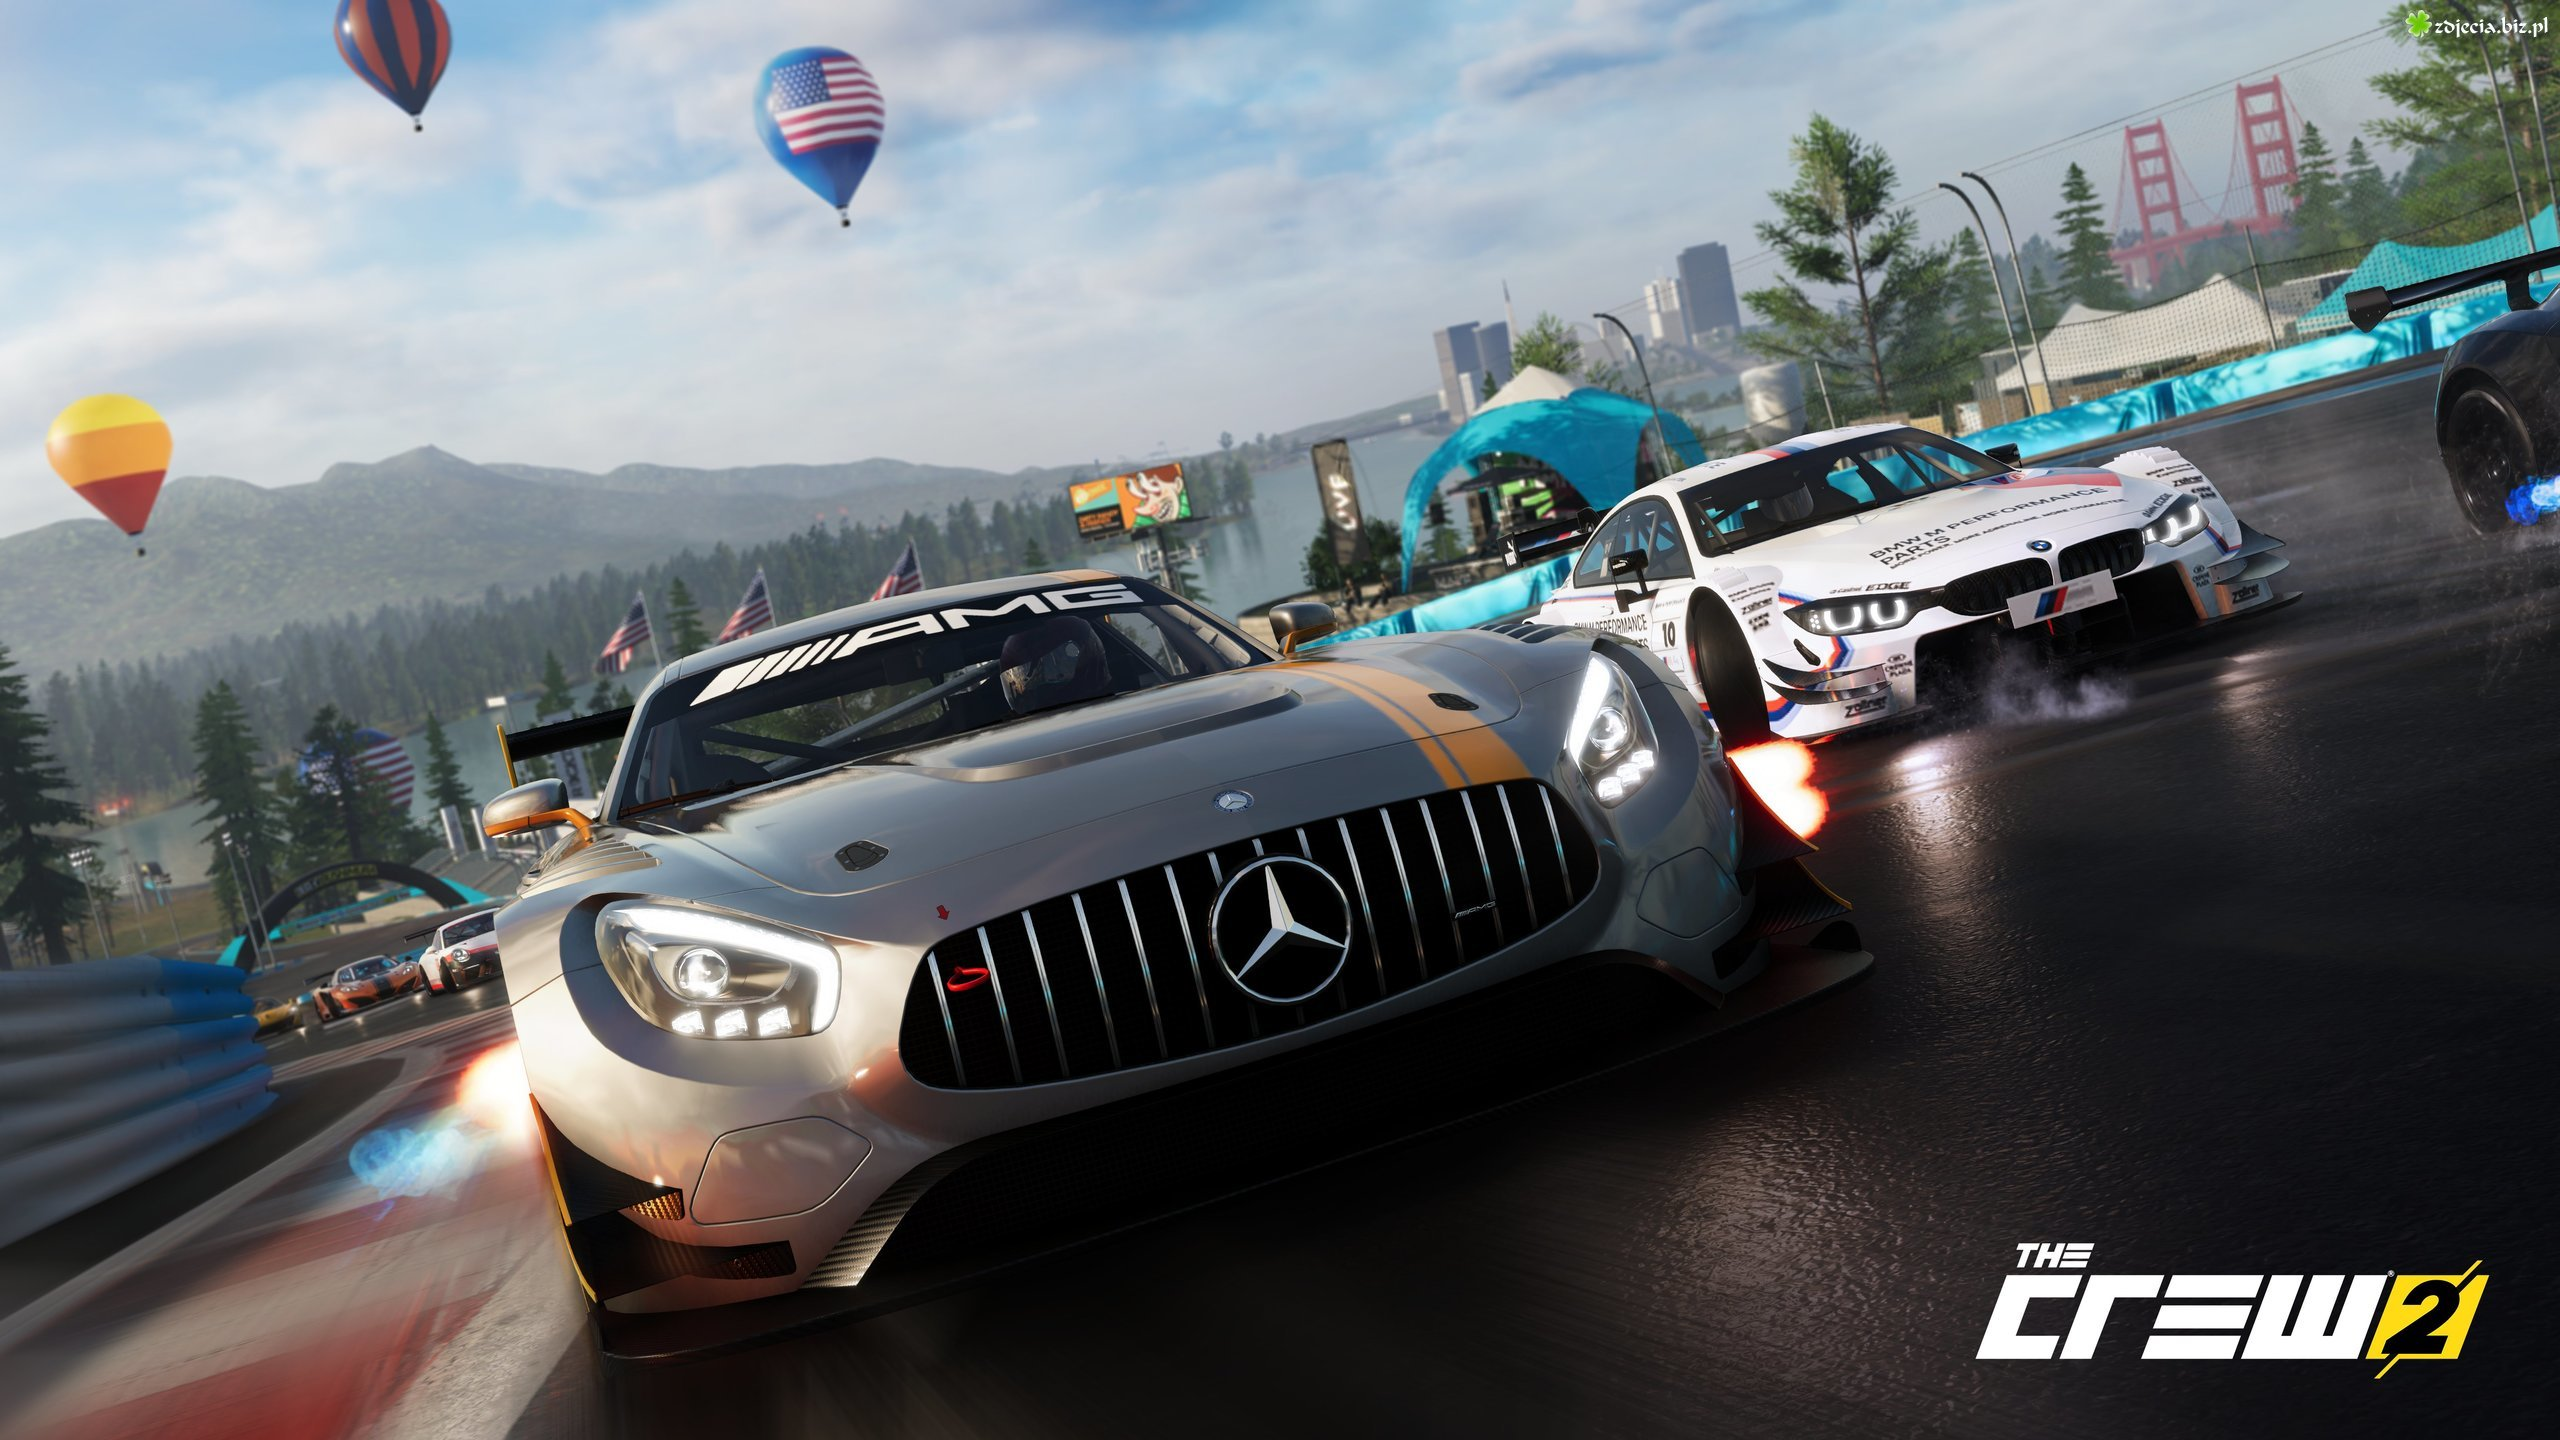 Gra, The Crew 2, Mercedes